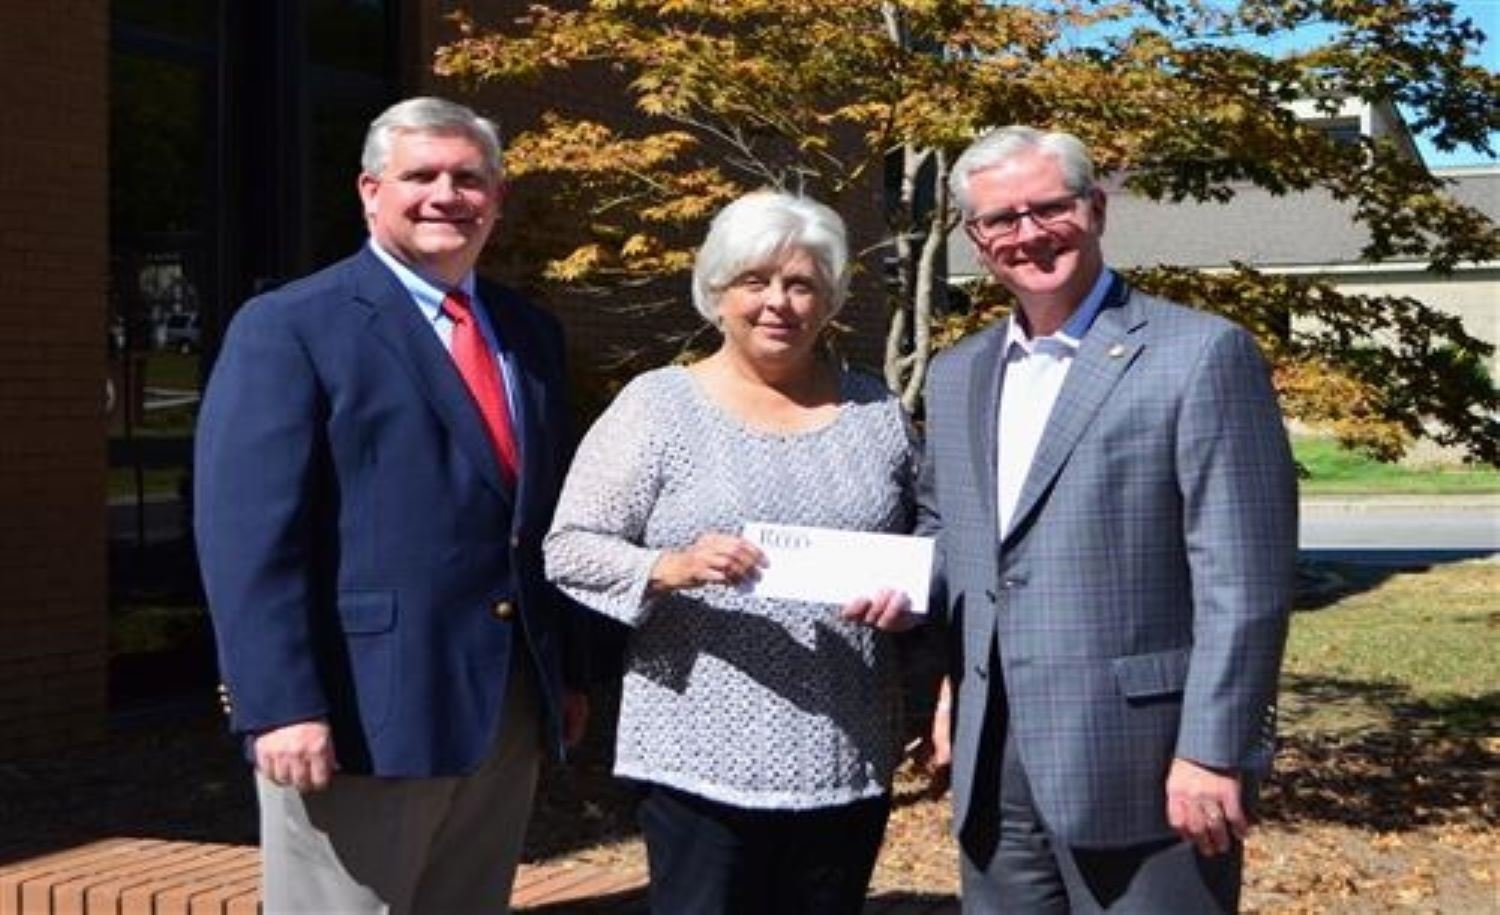 Sen. Greg Reed presented the Education Block Grant to the Walker County Board of Education Ms Guthrie and Dr. Hagood accepted